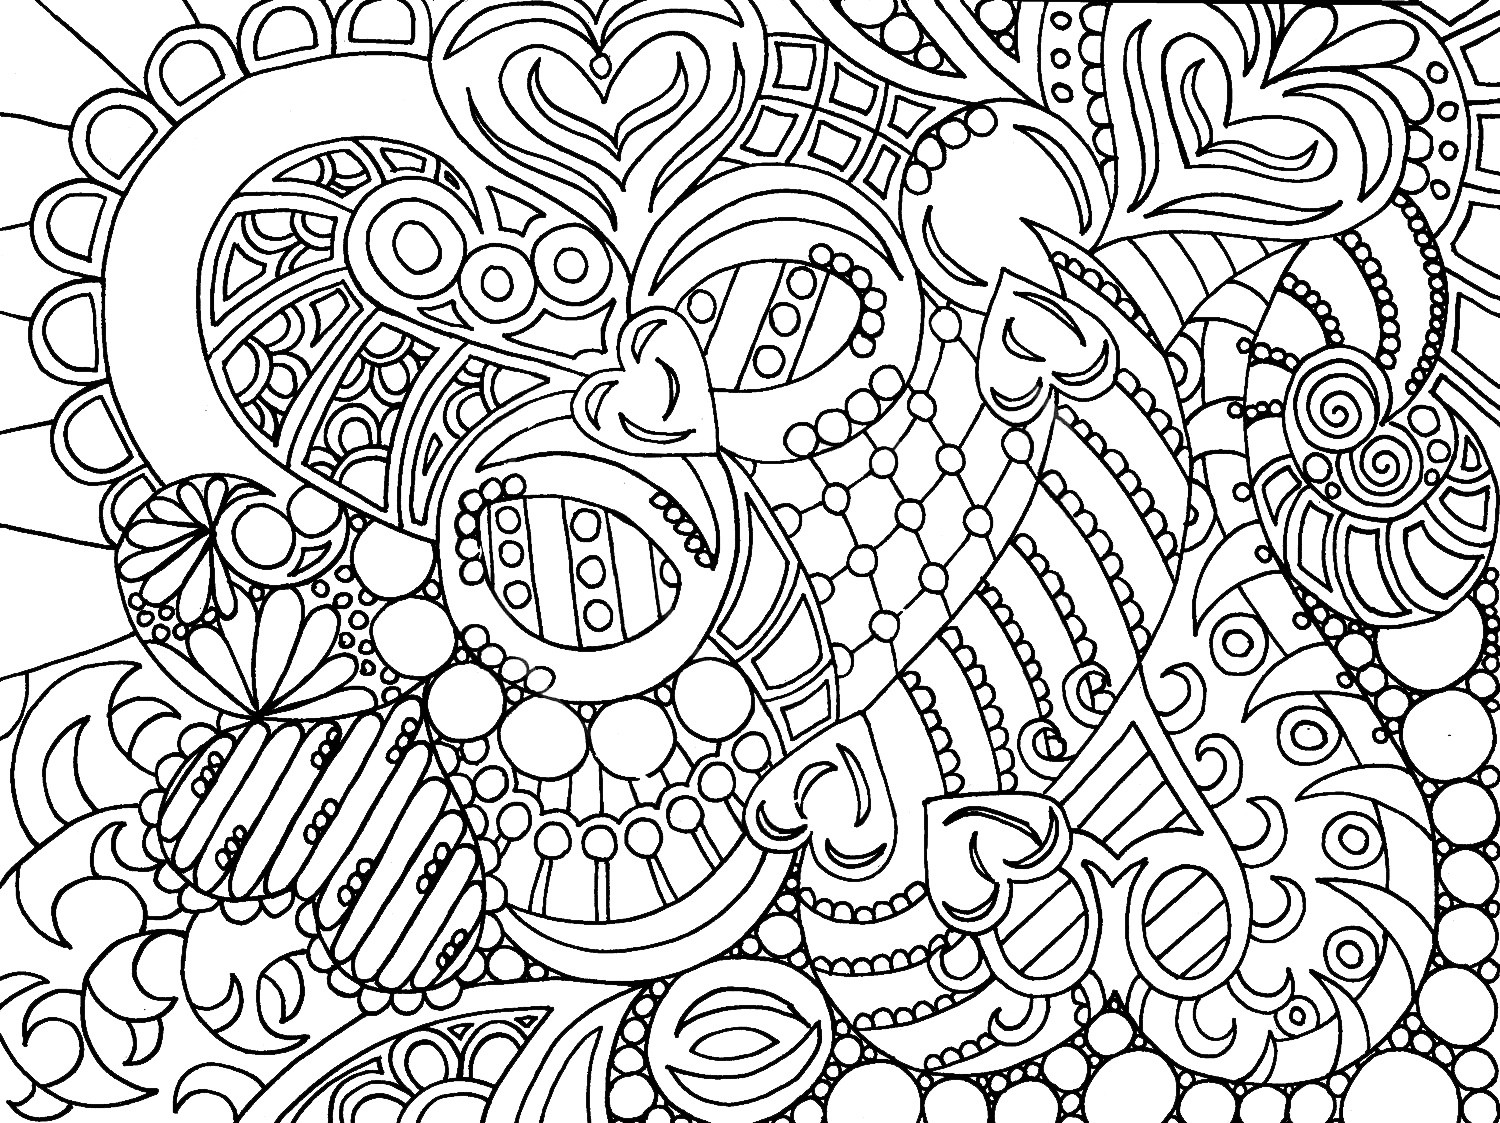 Free Coloring Sheets To Print  Mindfulness Colouring Sheets Free Printable Printable